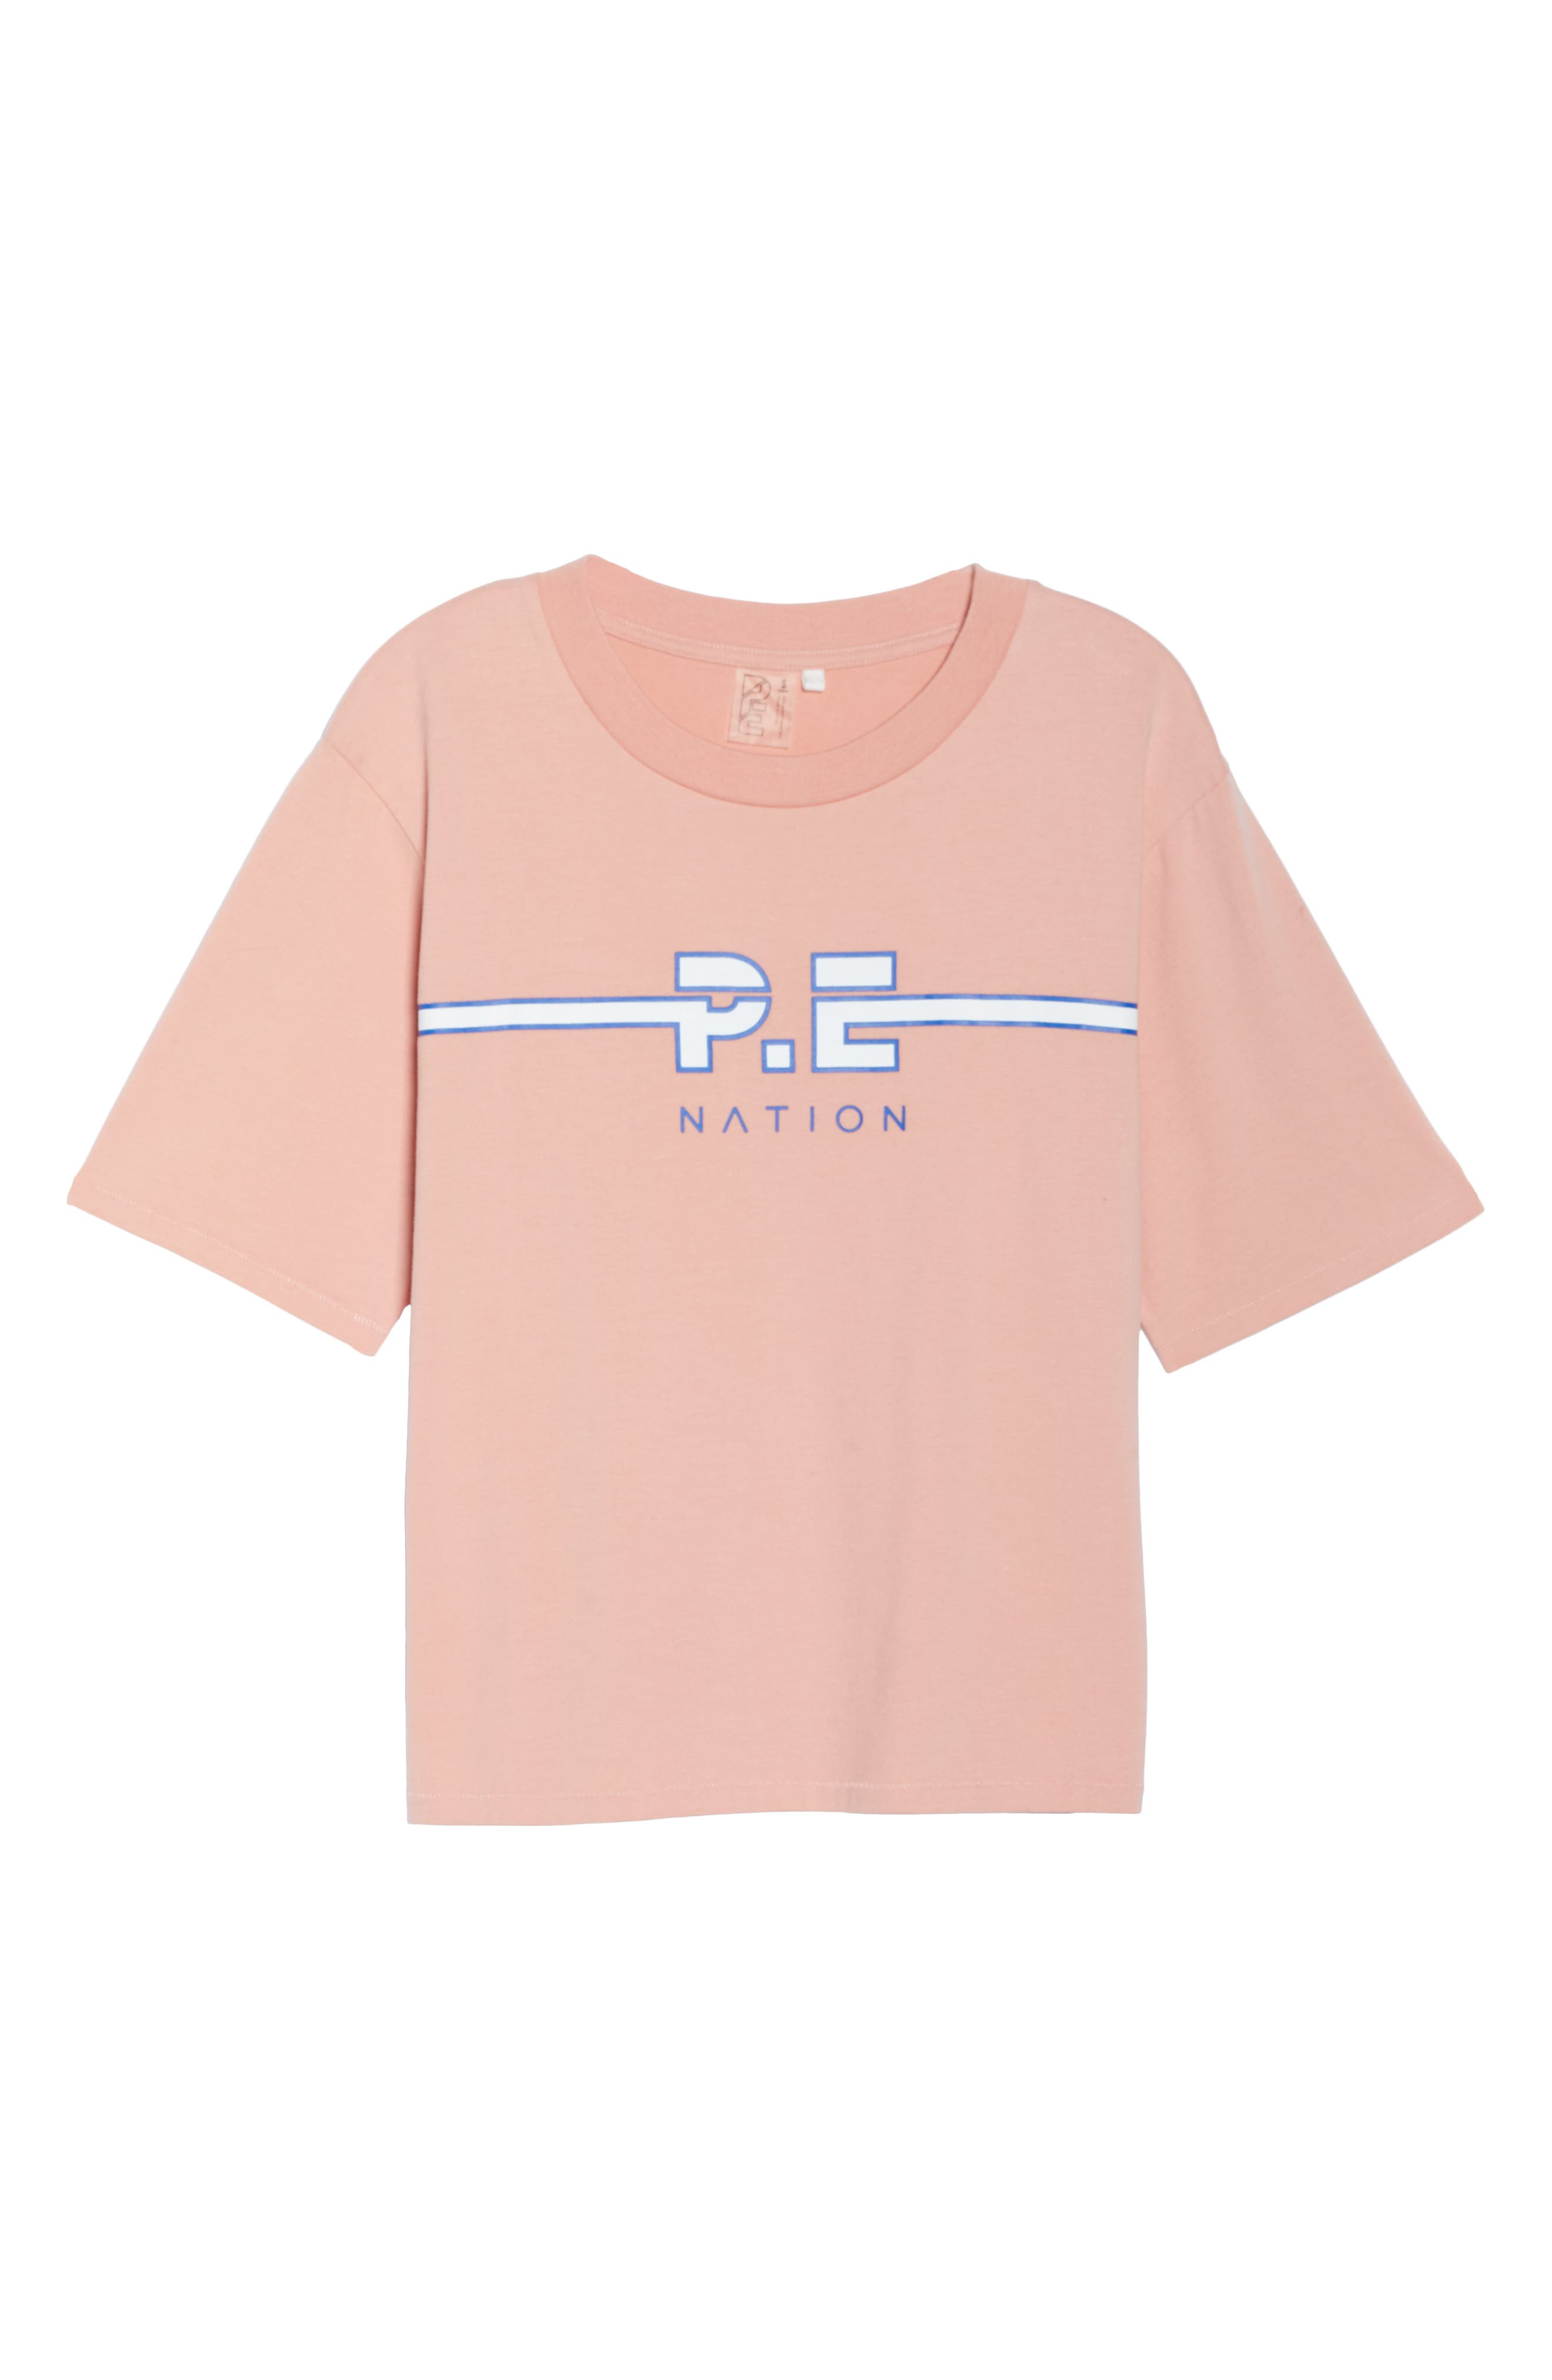 Active Duty Tee,                             Alternate thumbnail 7, color,                             PASTEL PINK